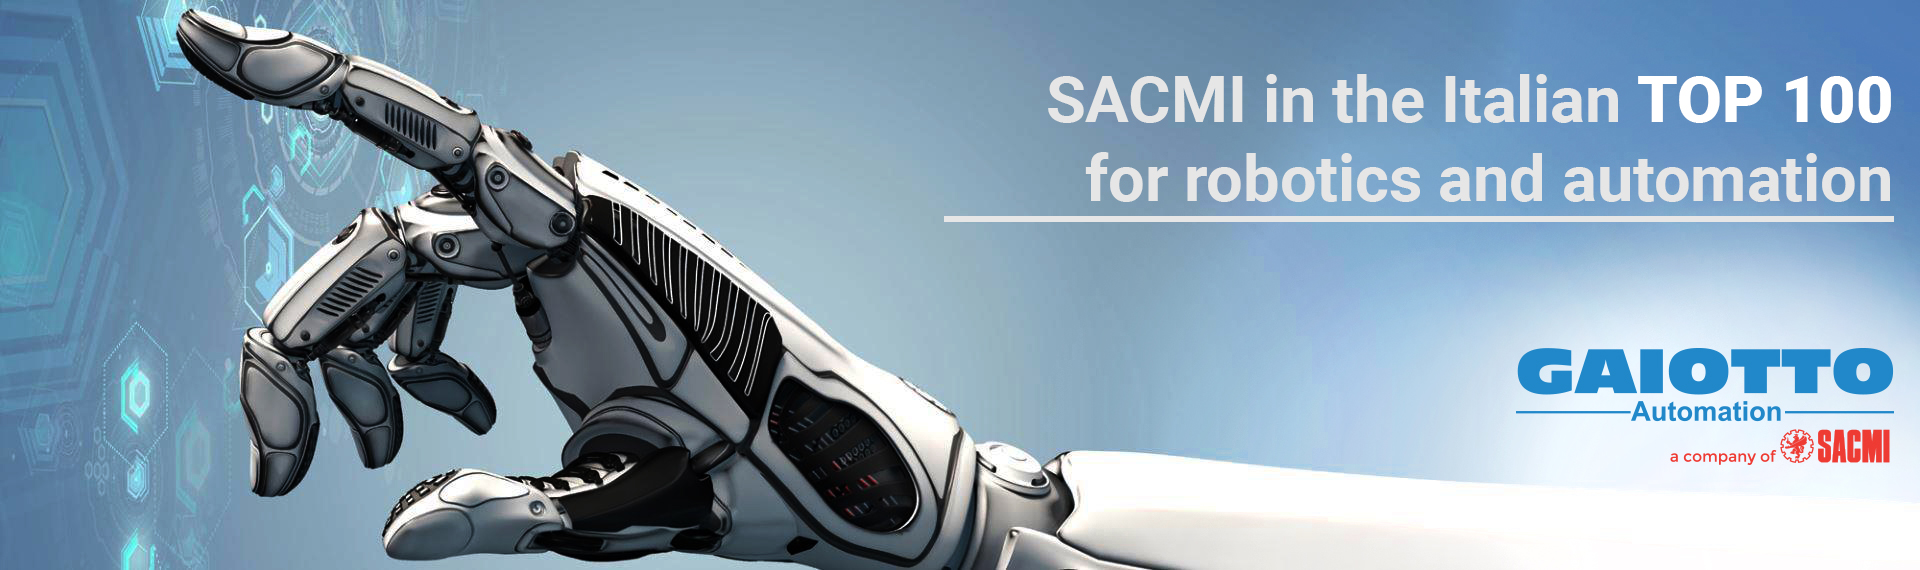 SACMI in the Italian top 100 for robotics and automation